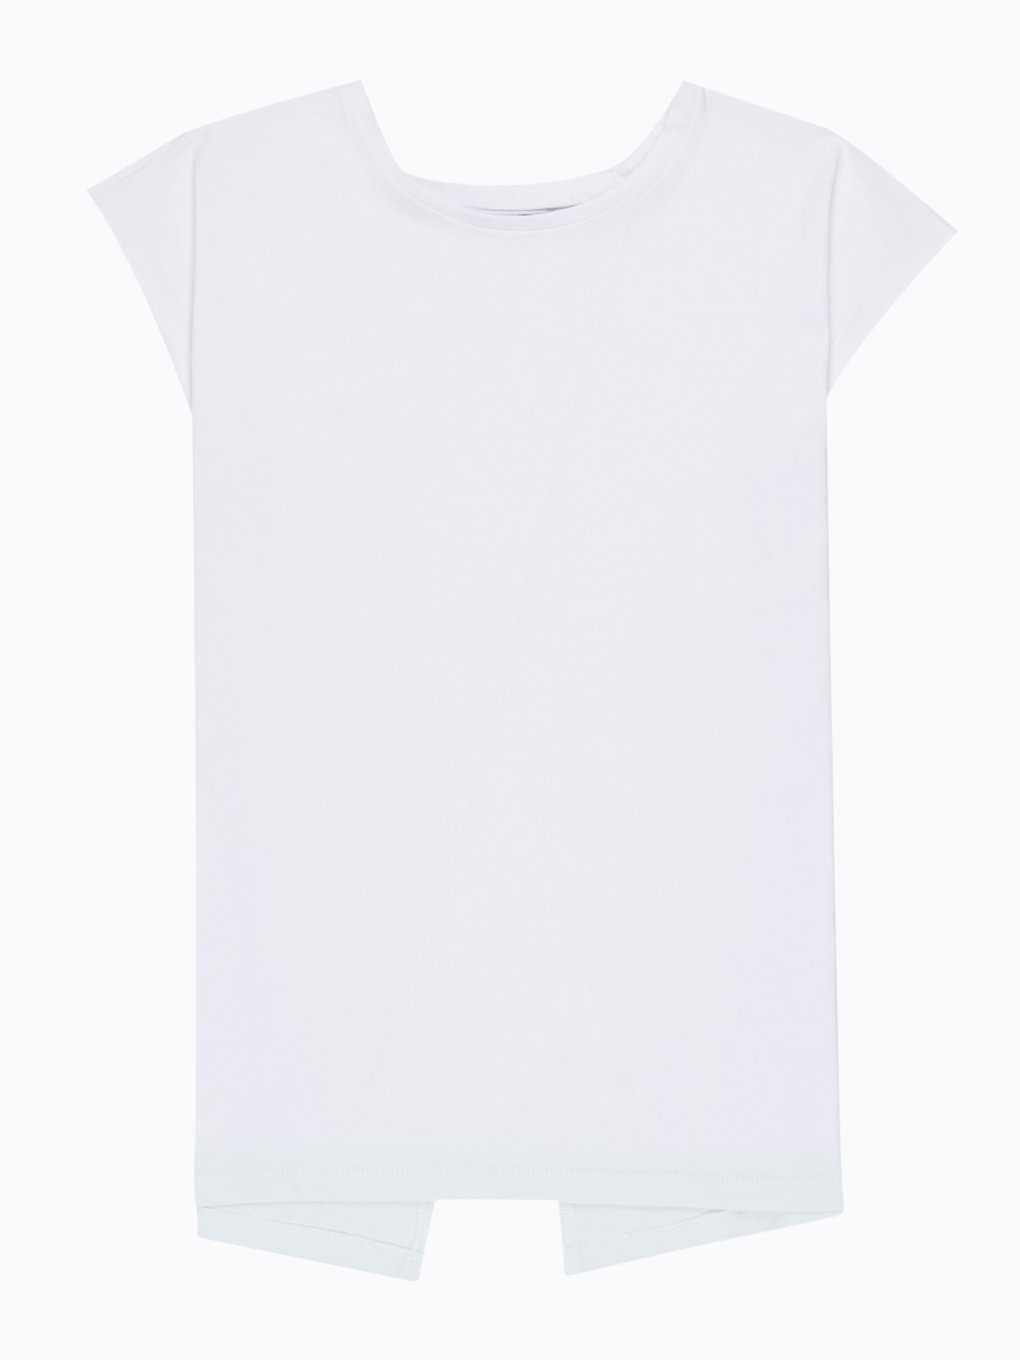 Back slit t-shirt